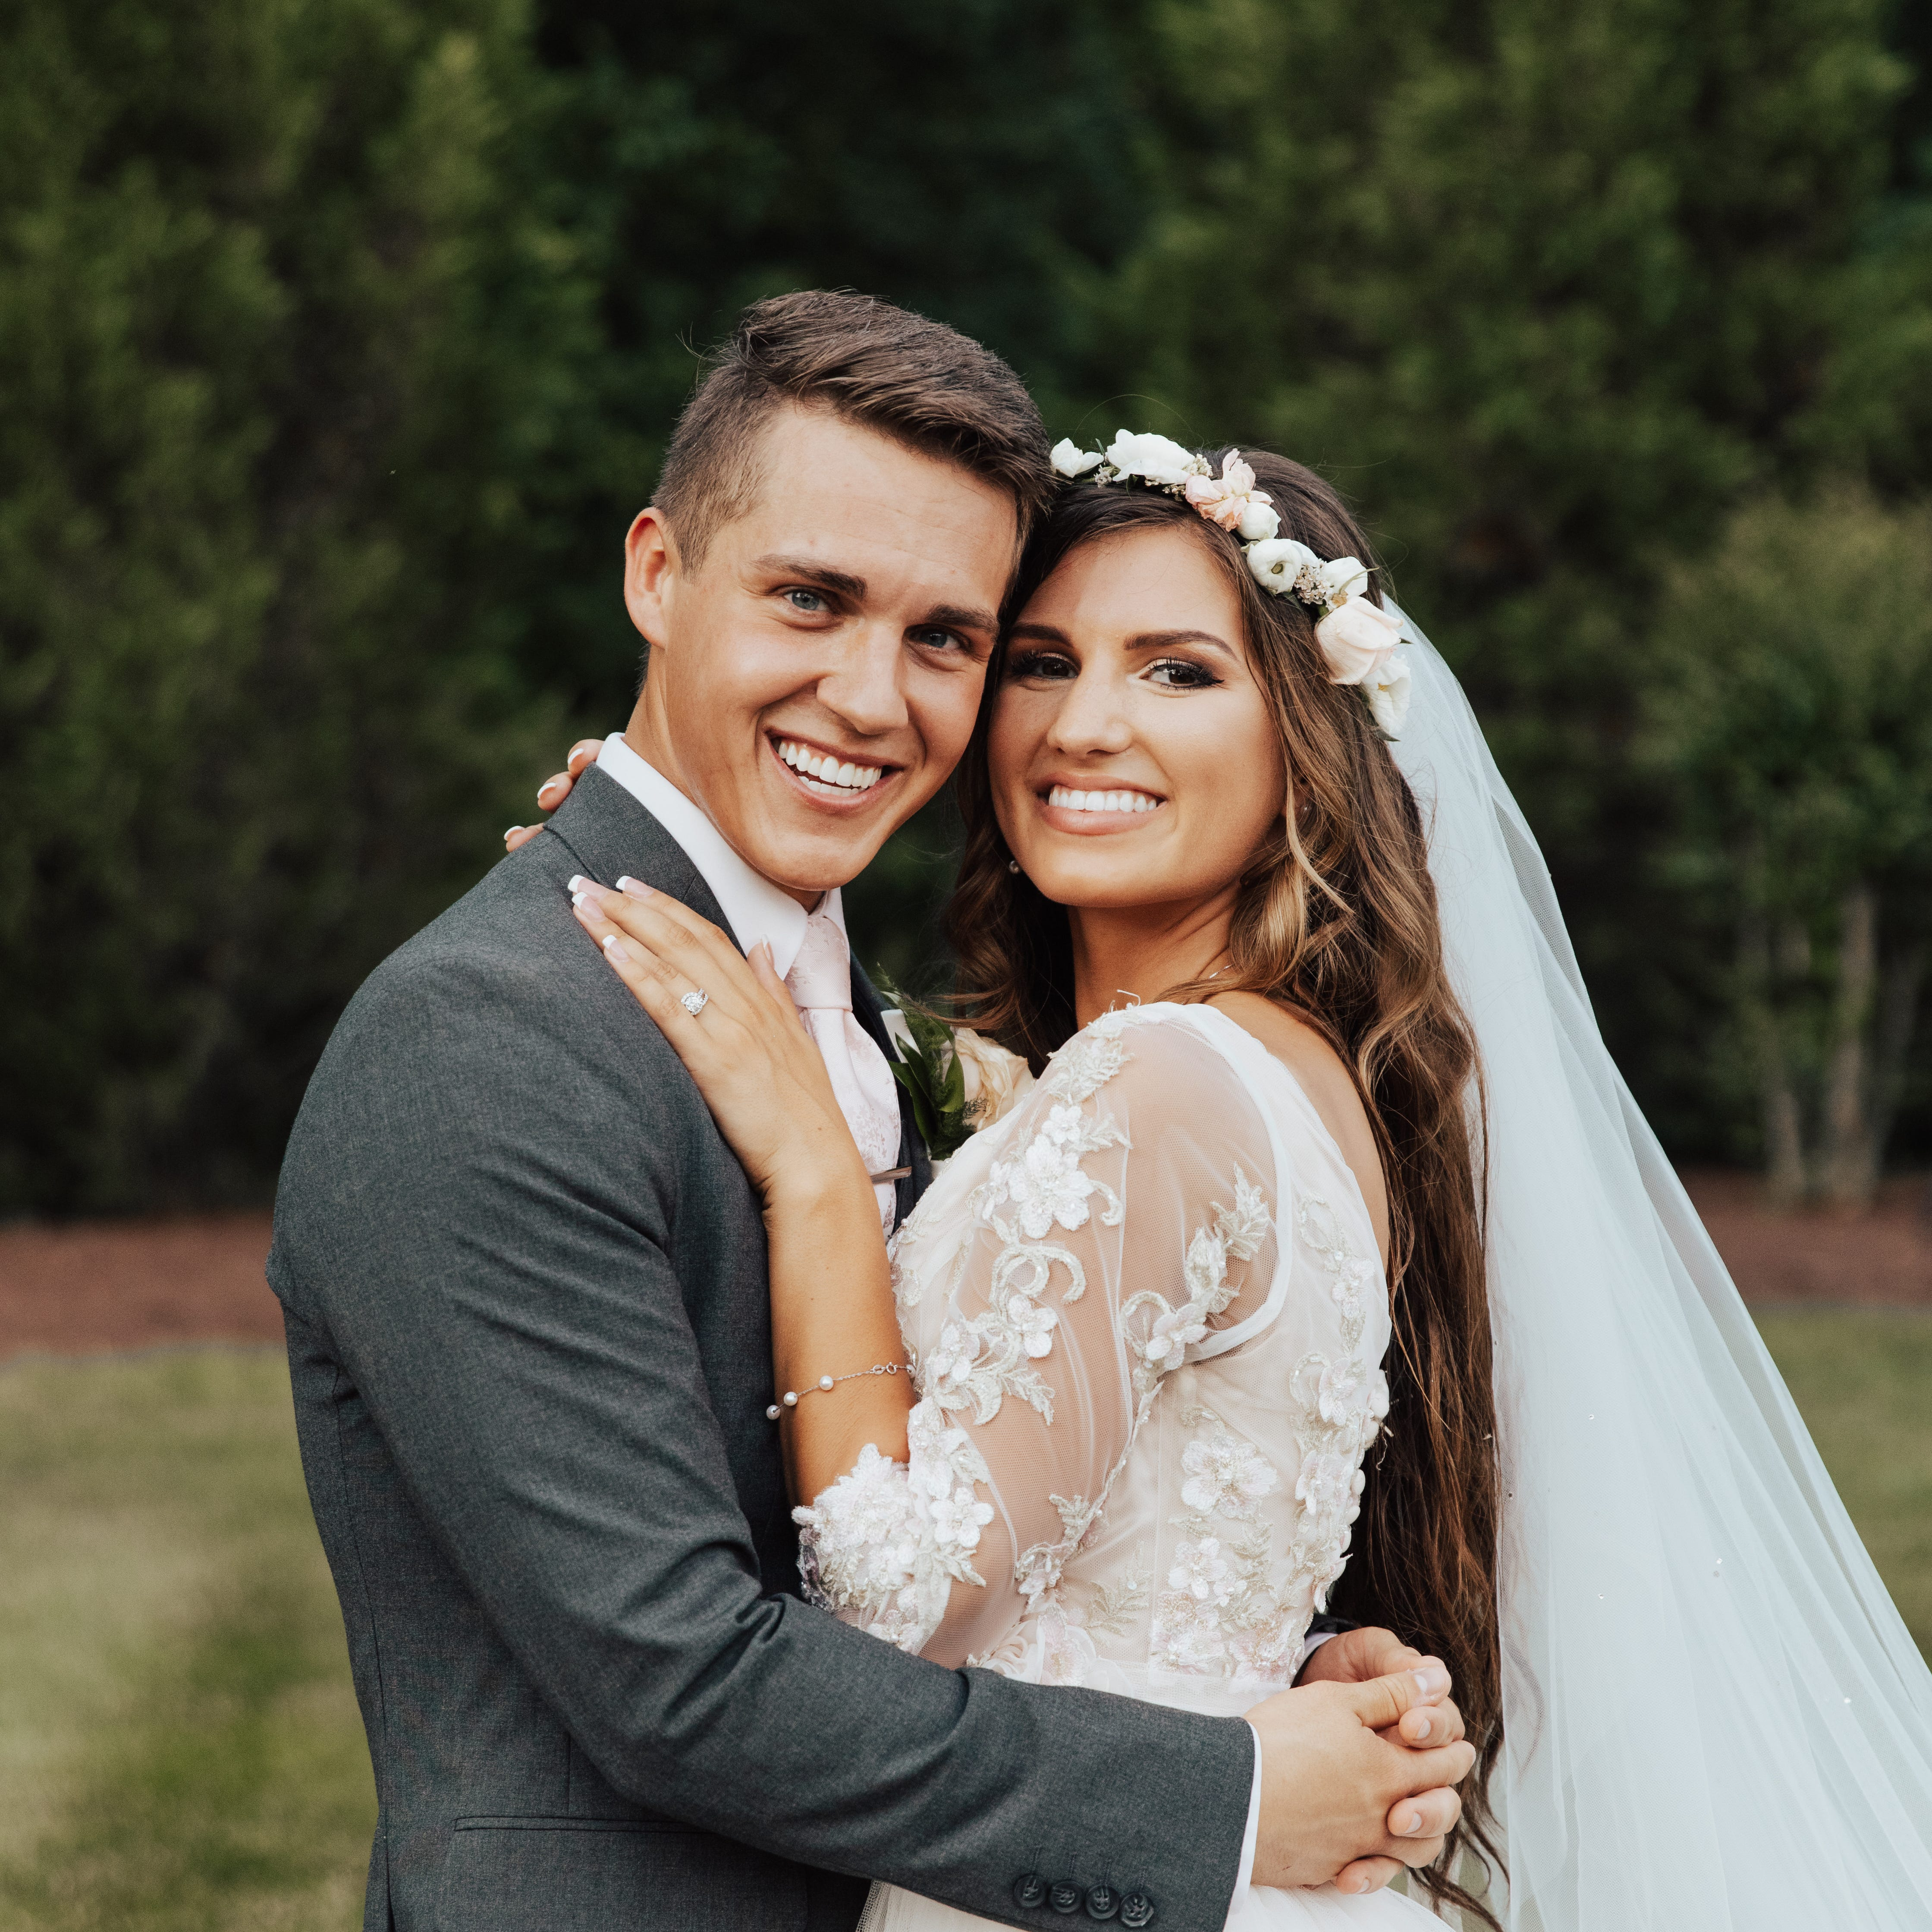 'Bringing Up Bates' stars Carlin Bates, Evan Stewart marry in emotion-filled ceremony